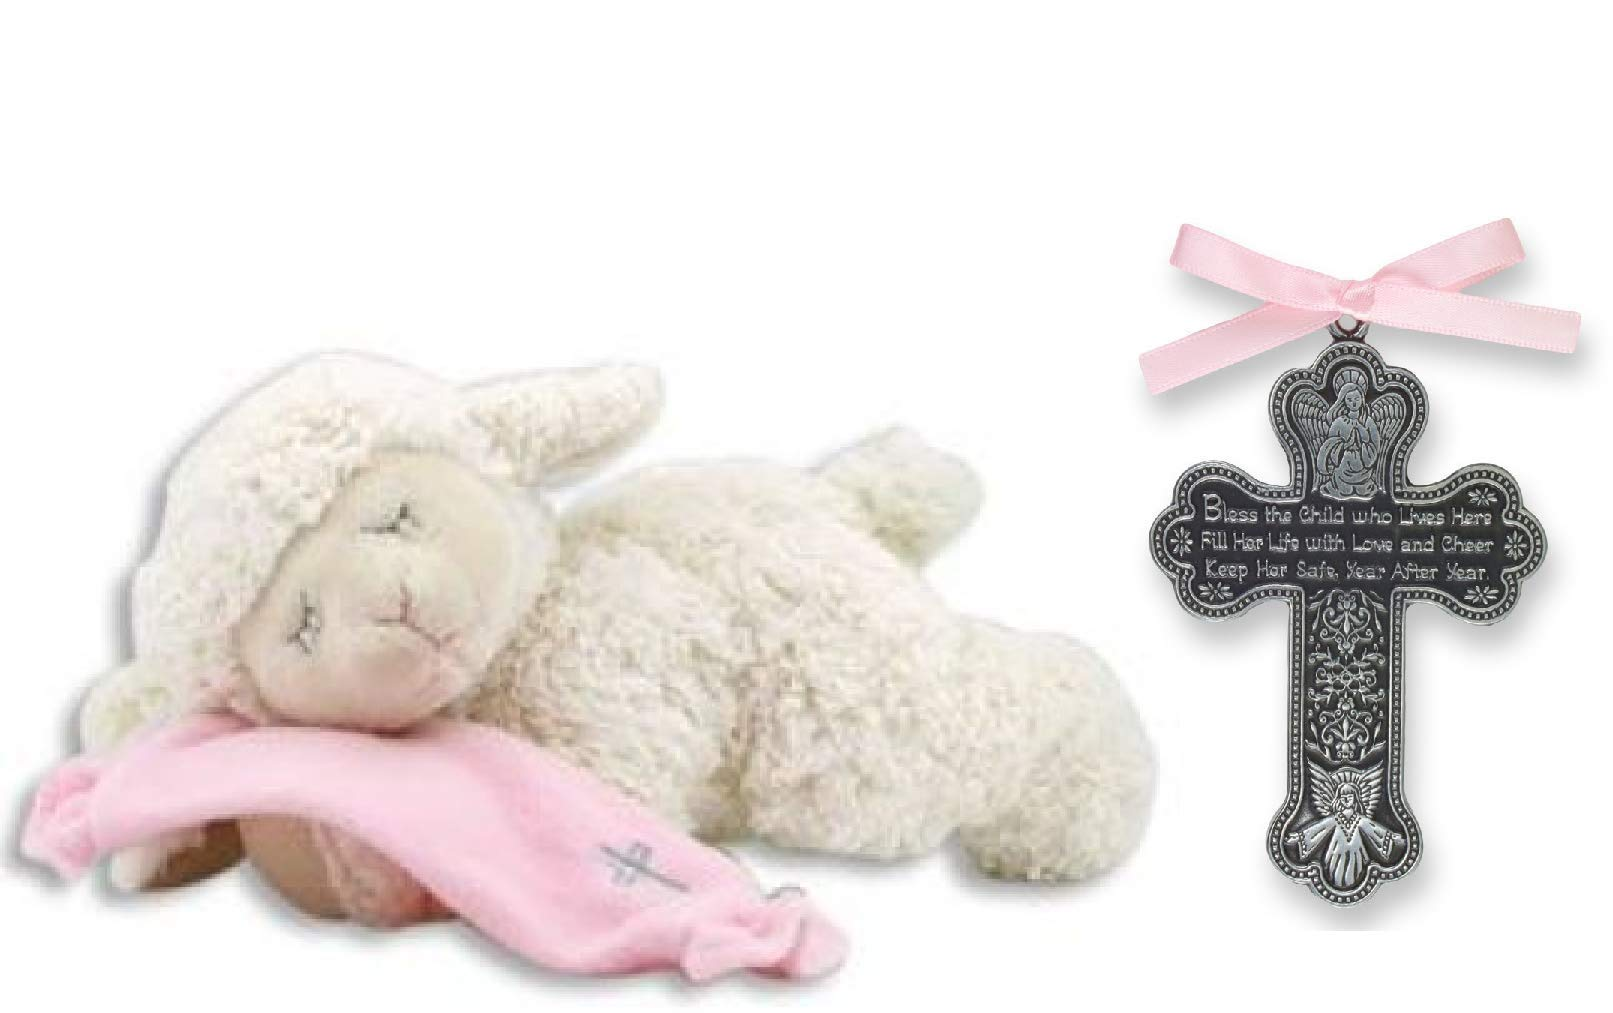 Adorable Plush Praying Lamb with Pink Blanket - Recites''Now I Lay Me Down to Sleep'' Prayer & Bless The Child - Guardian Angle Crib Cross with Pink Satin Ribbon for Girl